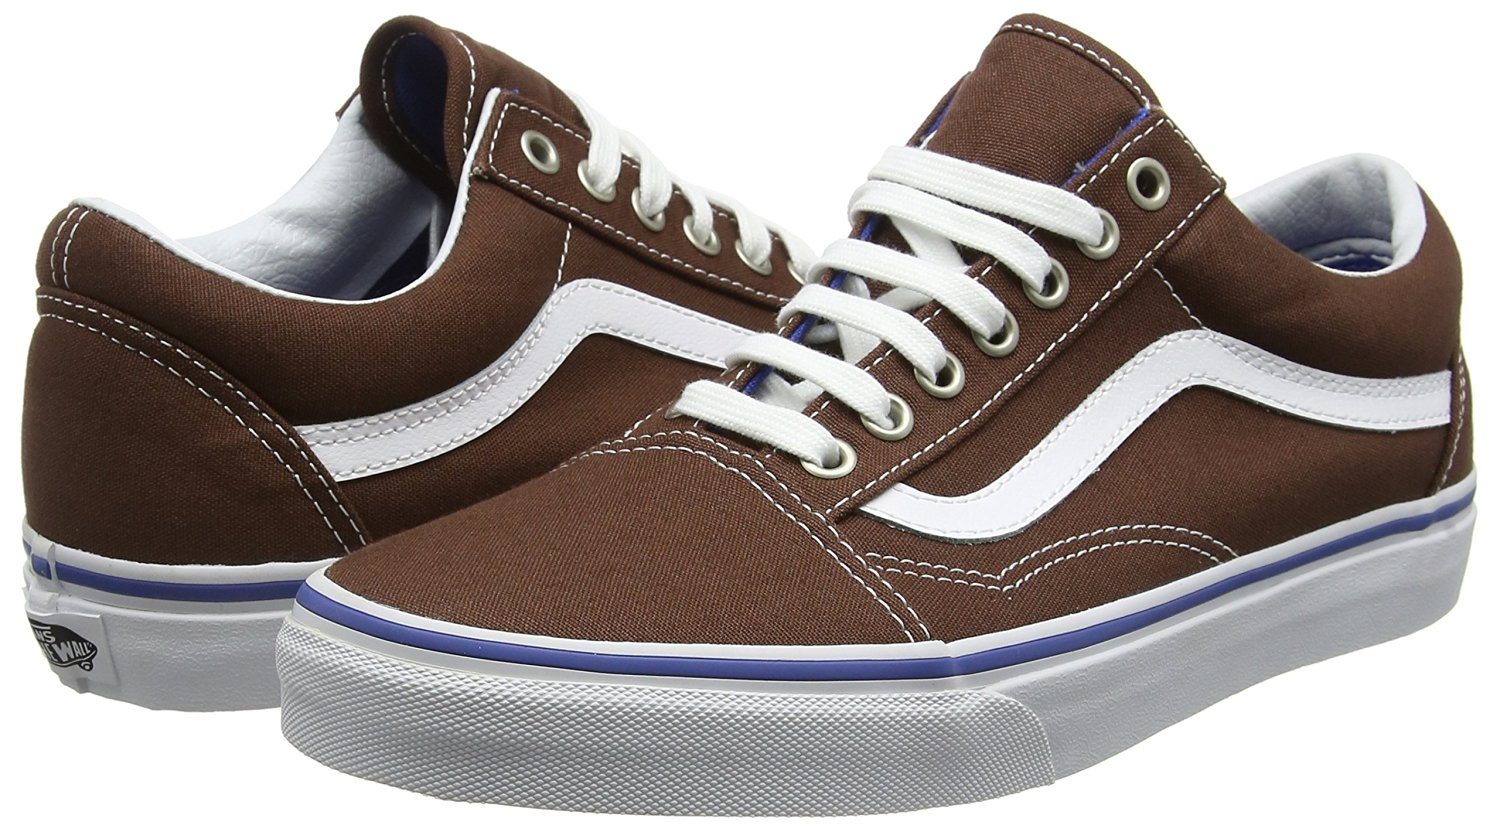 Vans Unisex Old Skool Skate Shoe-Chestnut